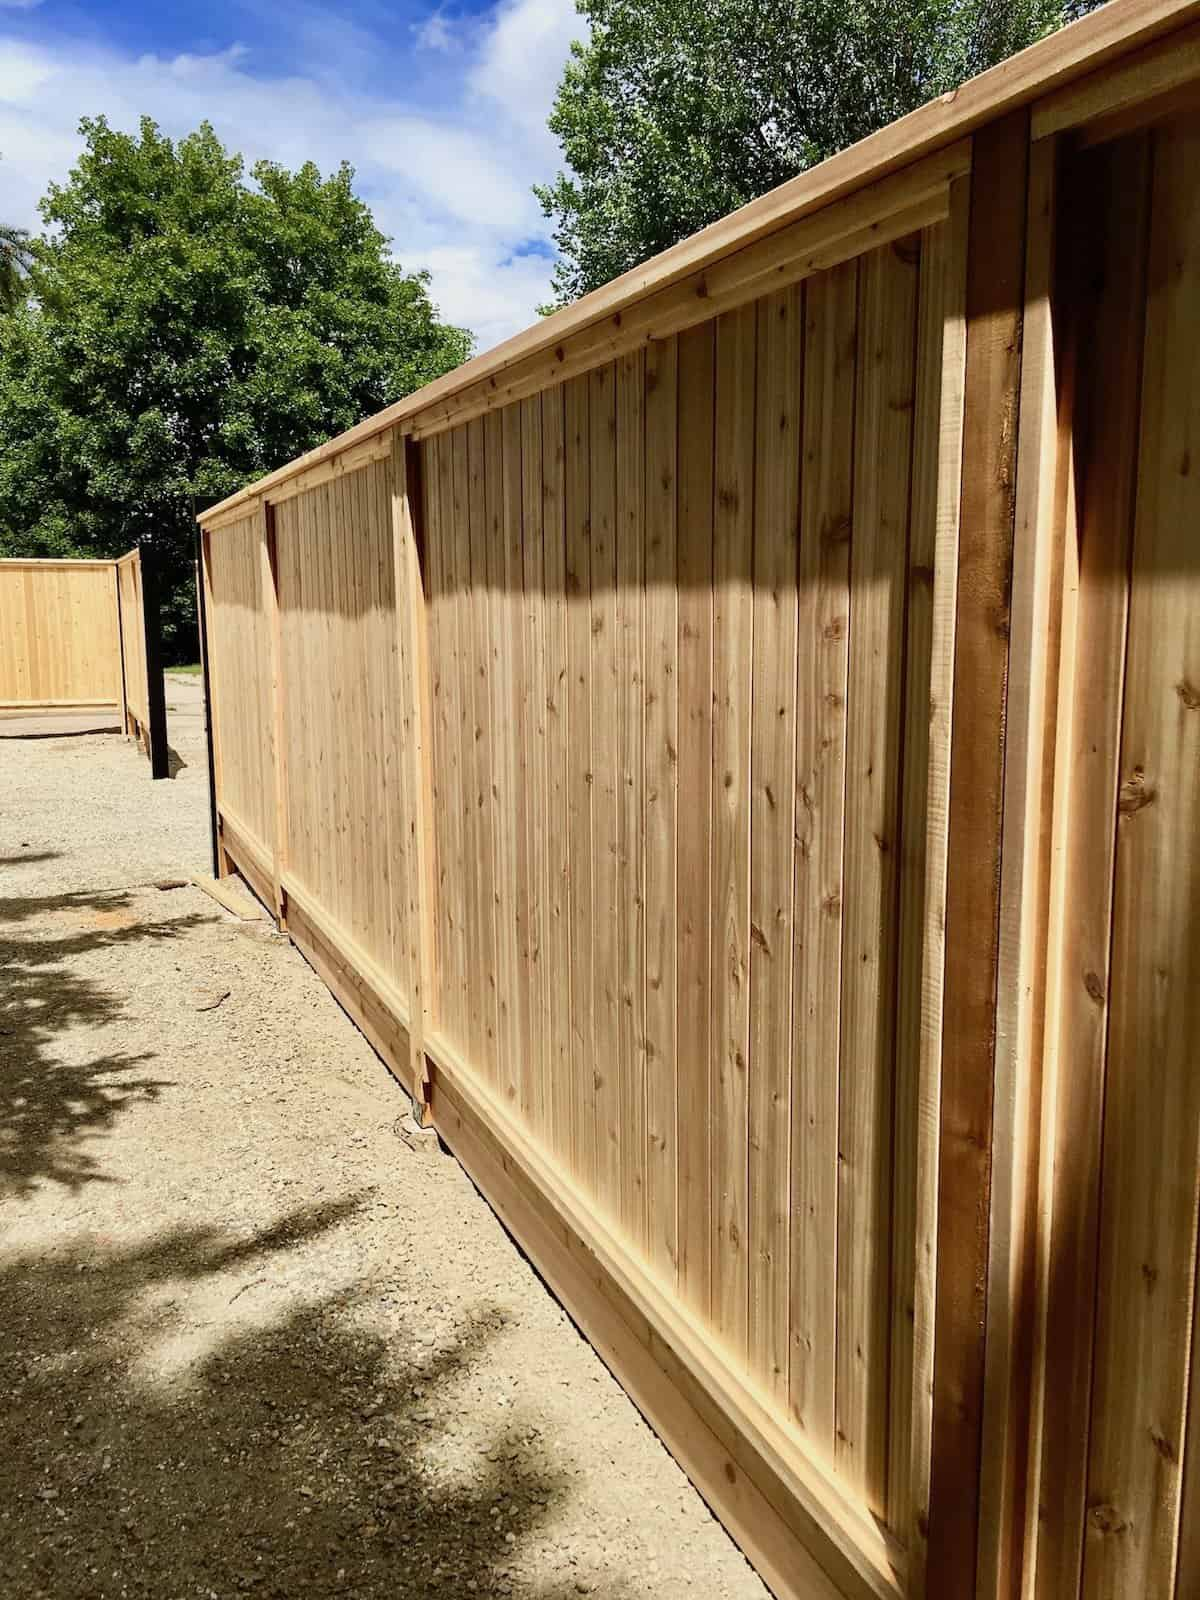 Privacy Fence: Using Wood Fence Panels to Create Privacy ... on Decorations For Privacy Fence id=62555